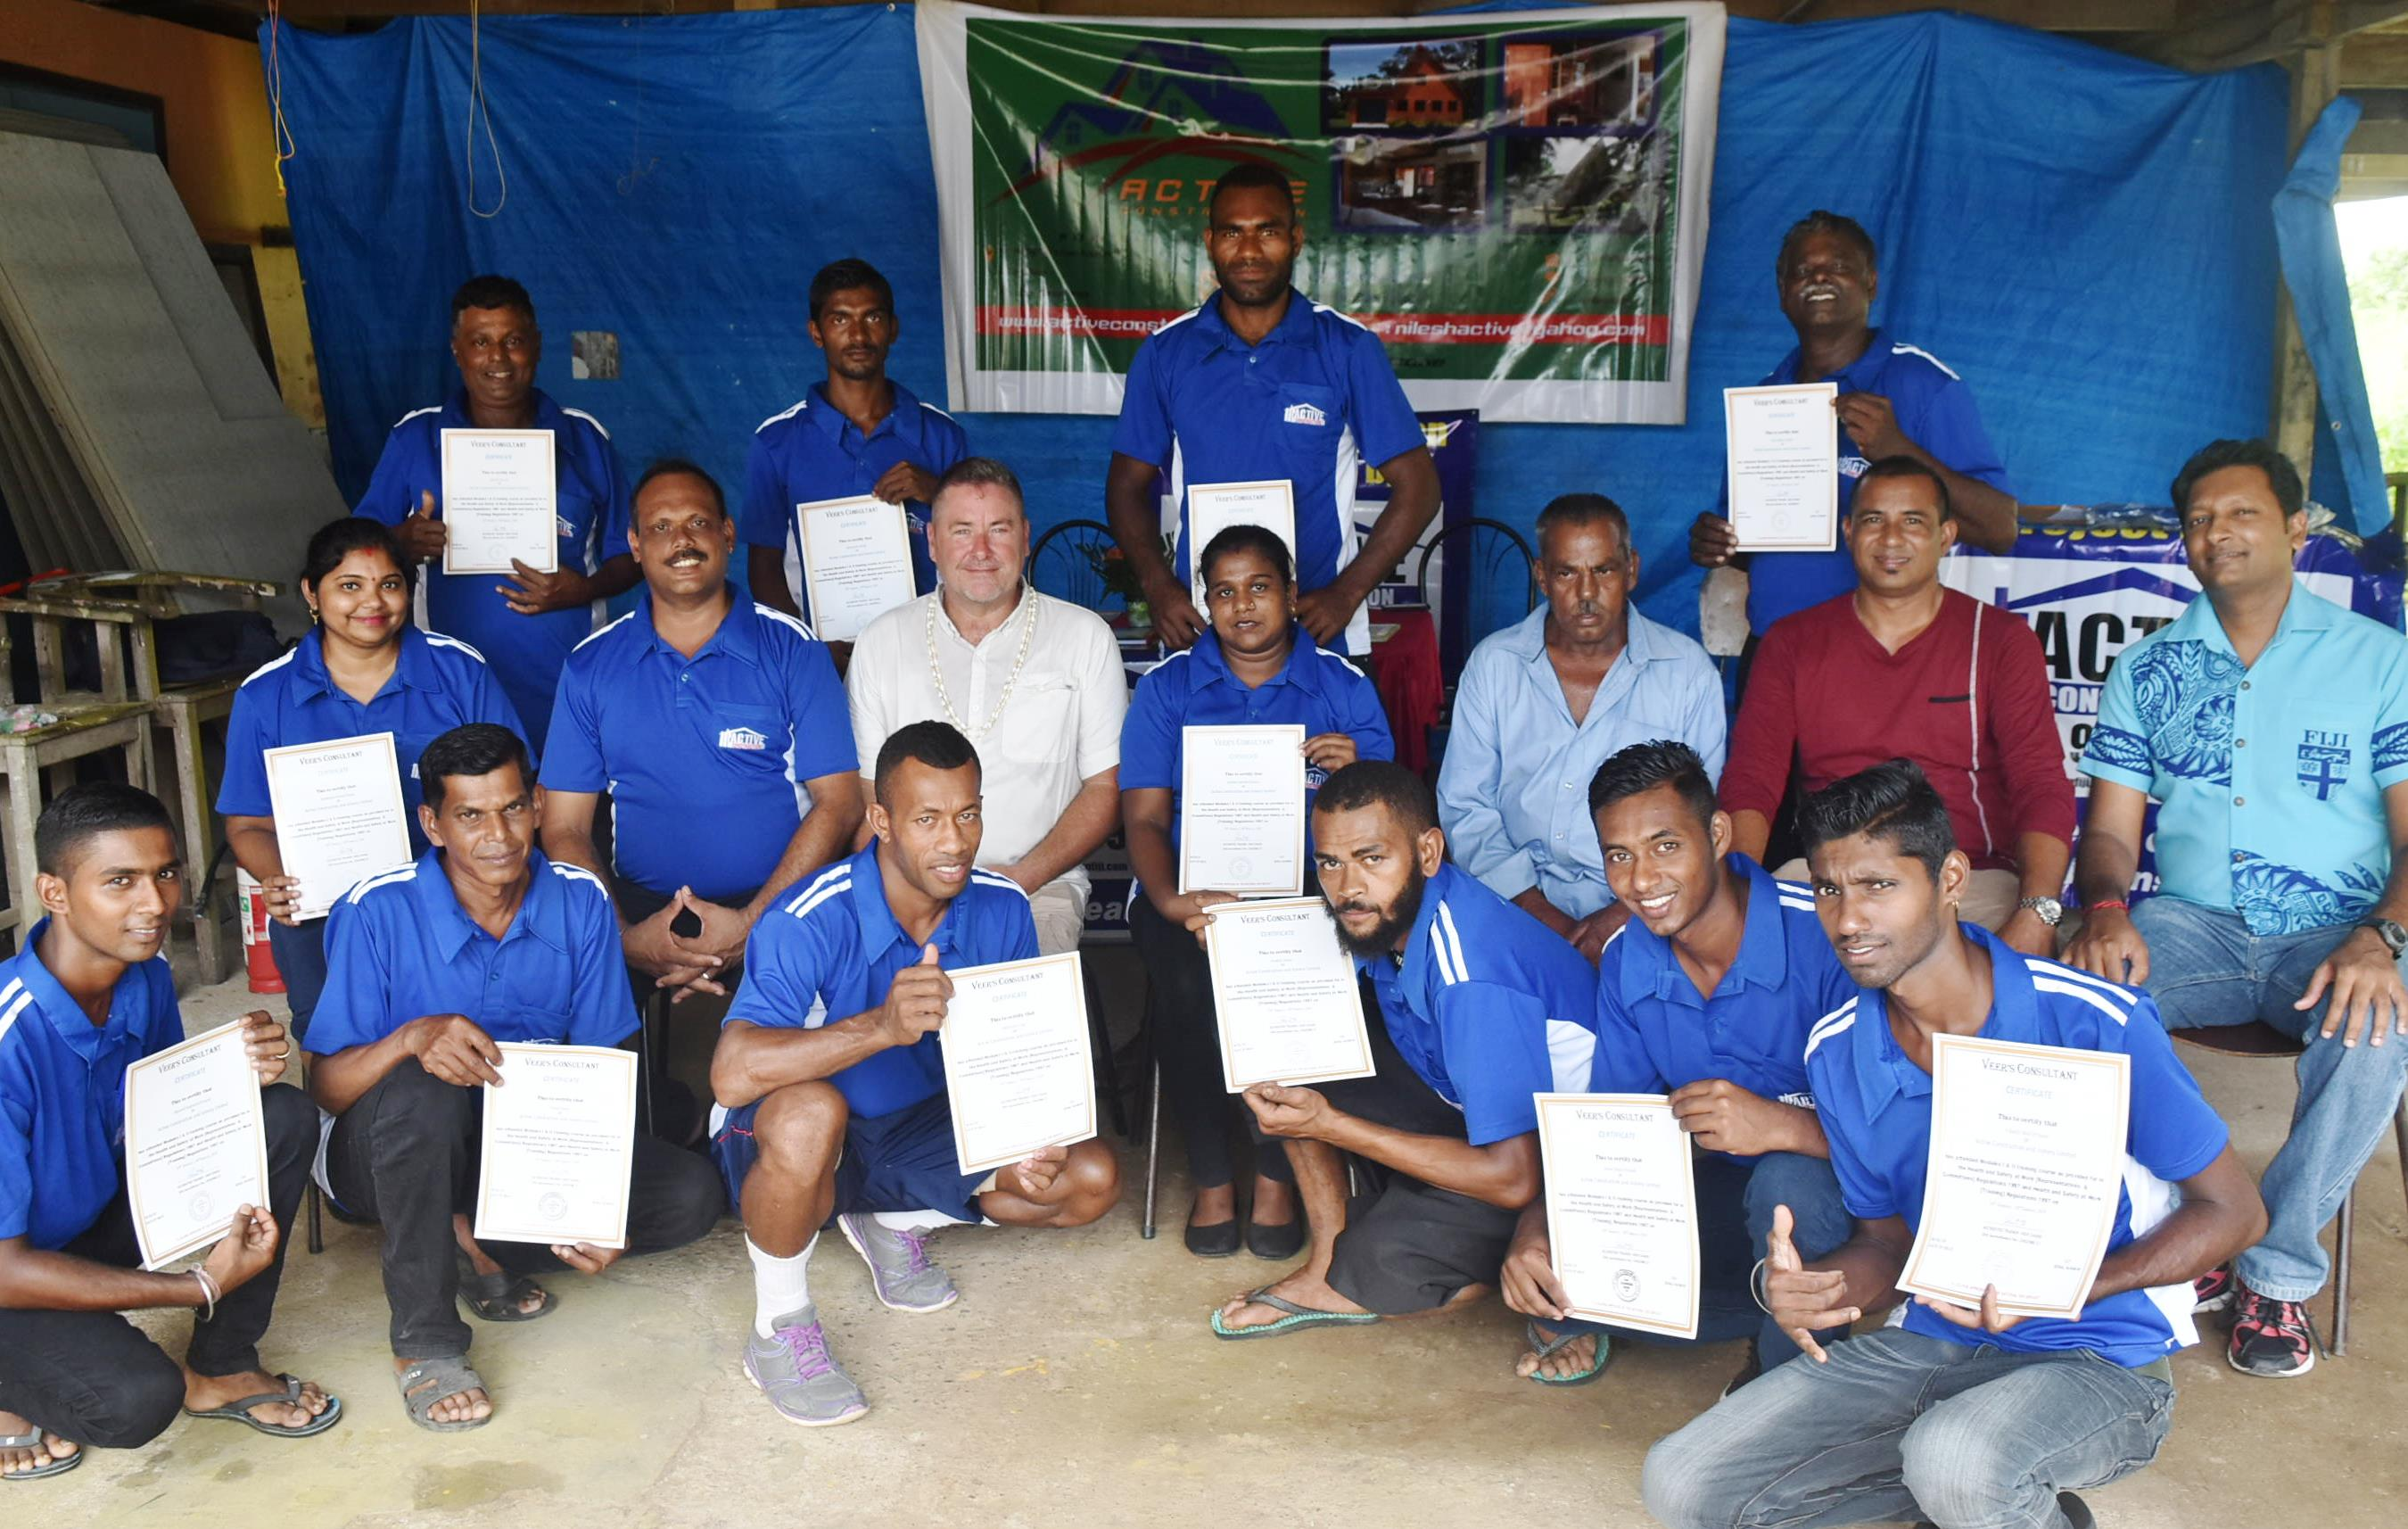 Active Construction continues to strive towards being a leading employer in Fiji within the construction industry. Amongst the many training programs carried out the picture above shows twelve employees that have just attended a 3 day workshop in Operational Health and Safety. The workshop was carried out by Mr Veer Chand of Veers Consultancy shown here together with the management of Active Construction and local businessman Mark Spurling who attended as Chief Guest.